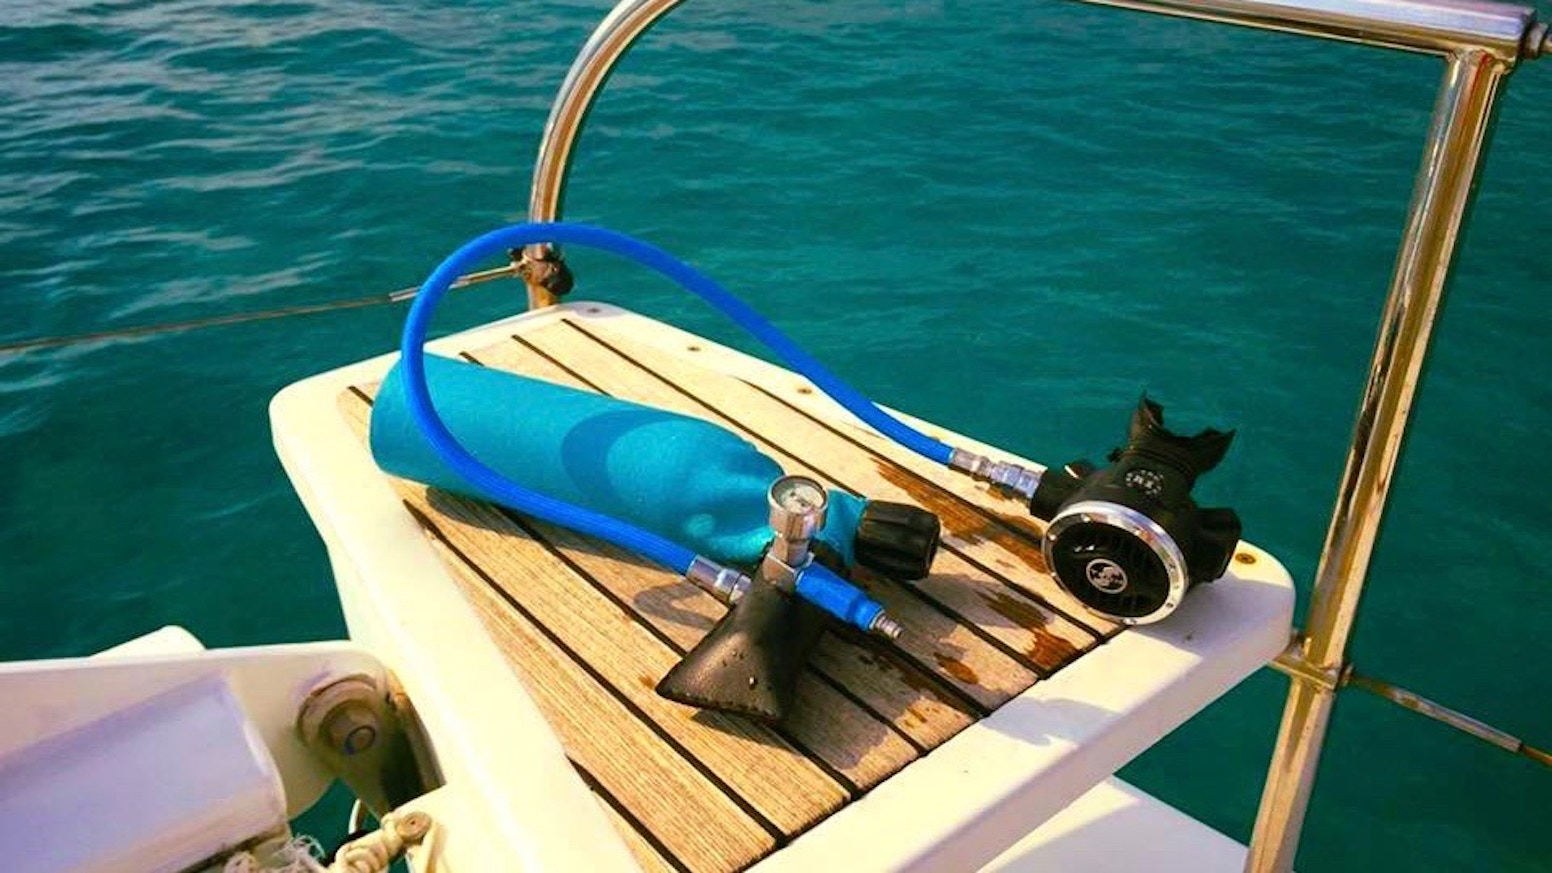 How to Breathe Underwater This Summer WITHOUT Scuba Gear